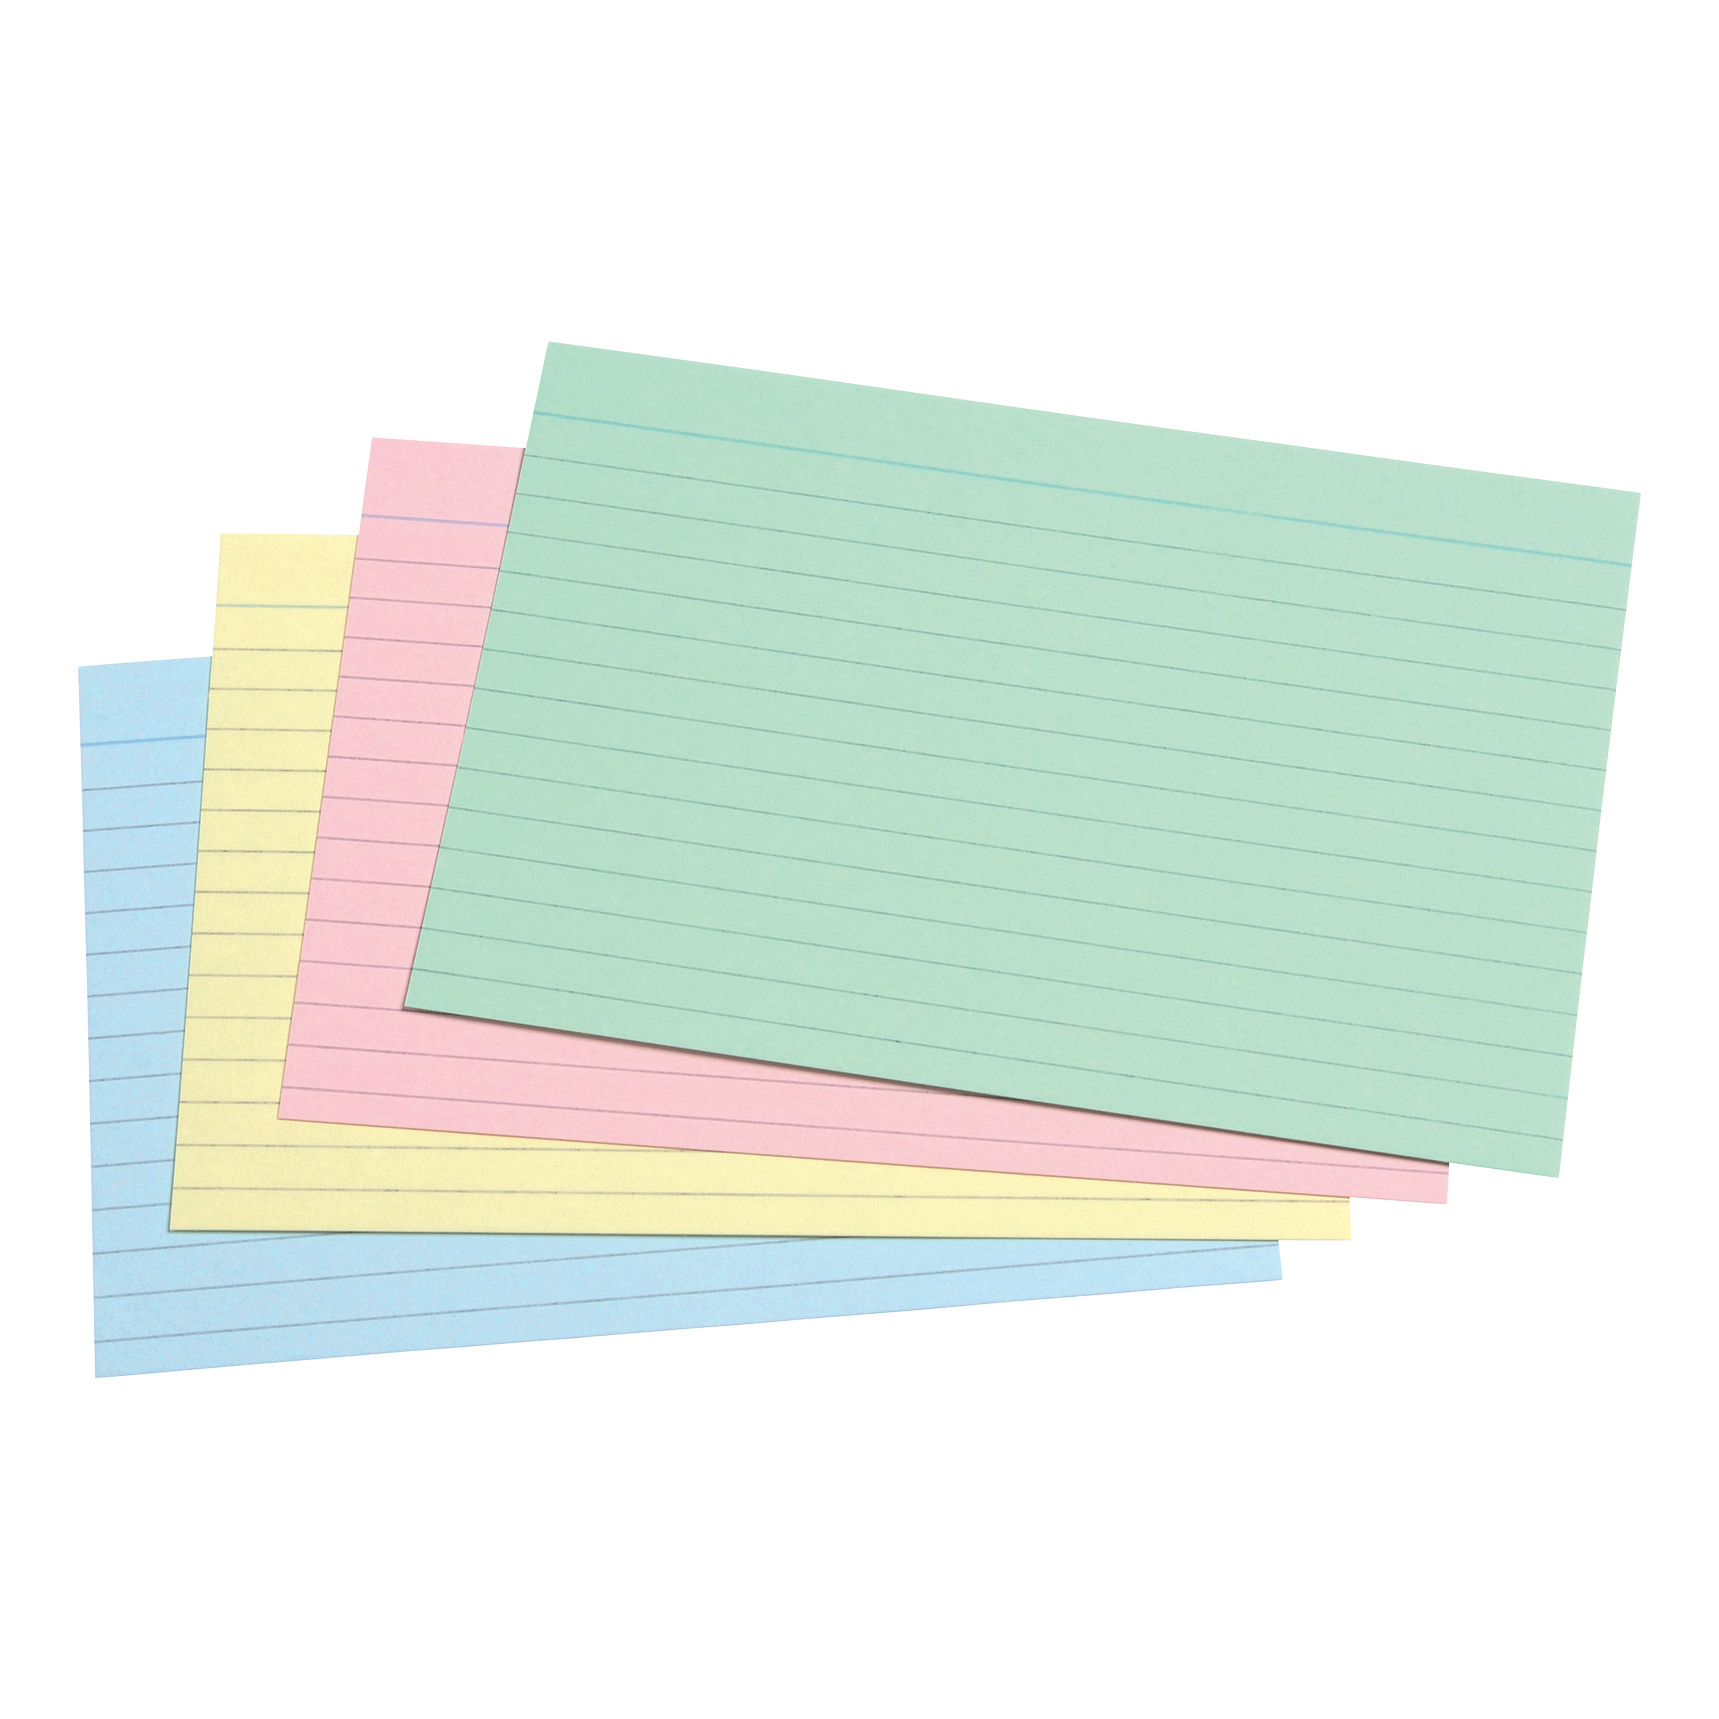 5 Star Office Record Cards Ruled Both Sides 6x4in 152x102mm Assorted Pack 100